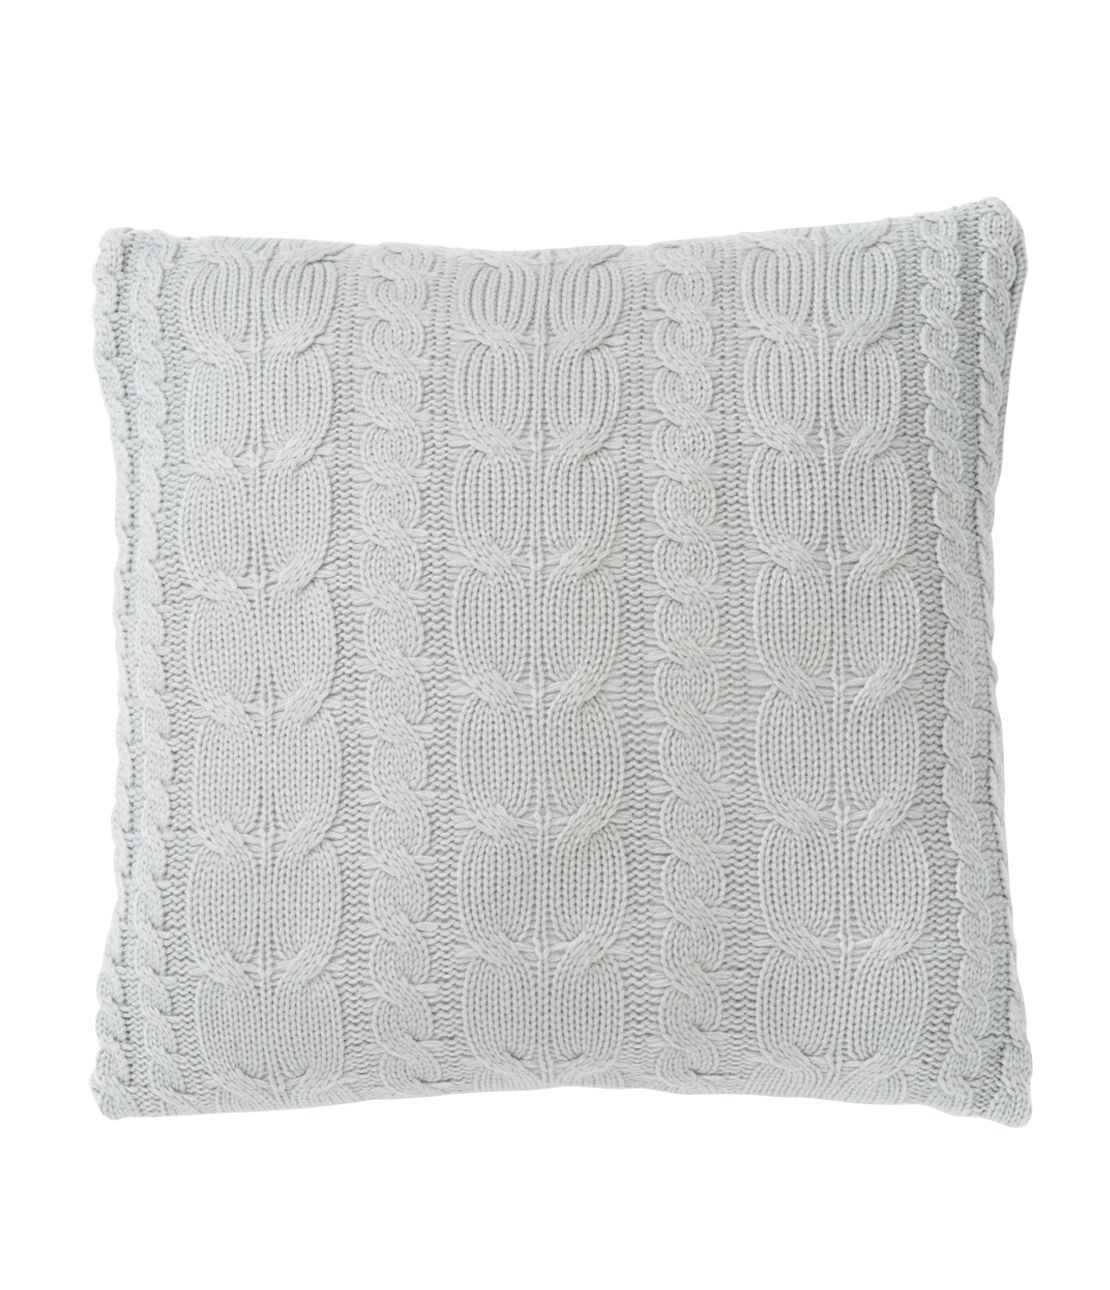 Cable net Cushion cover